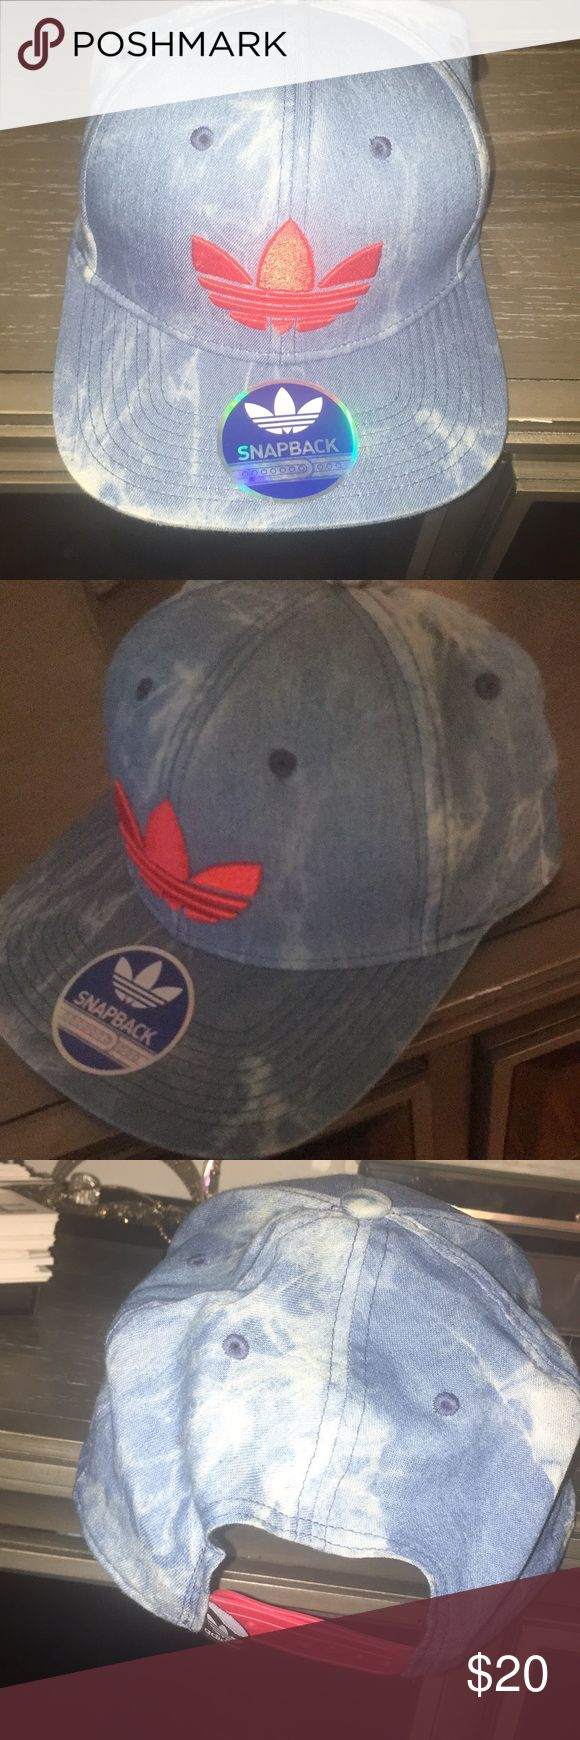 Demin adidas snapback Adidas denim and red snap back. Never worn adidas Accessories Hats